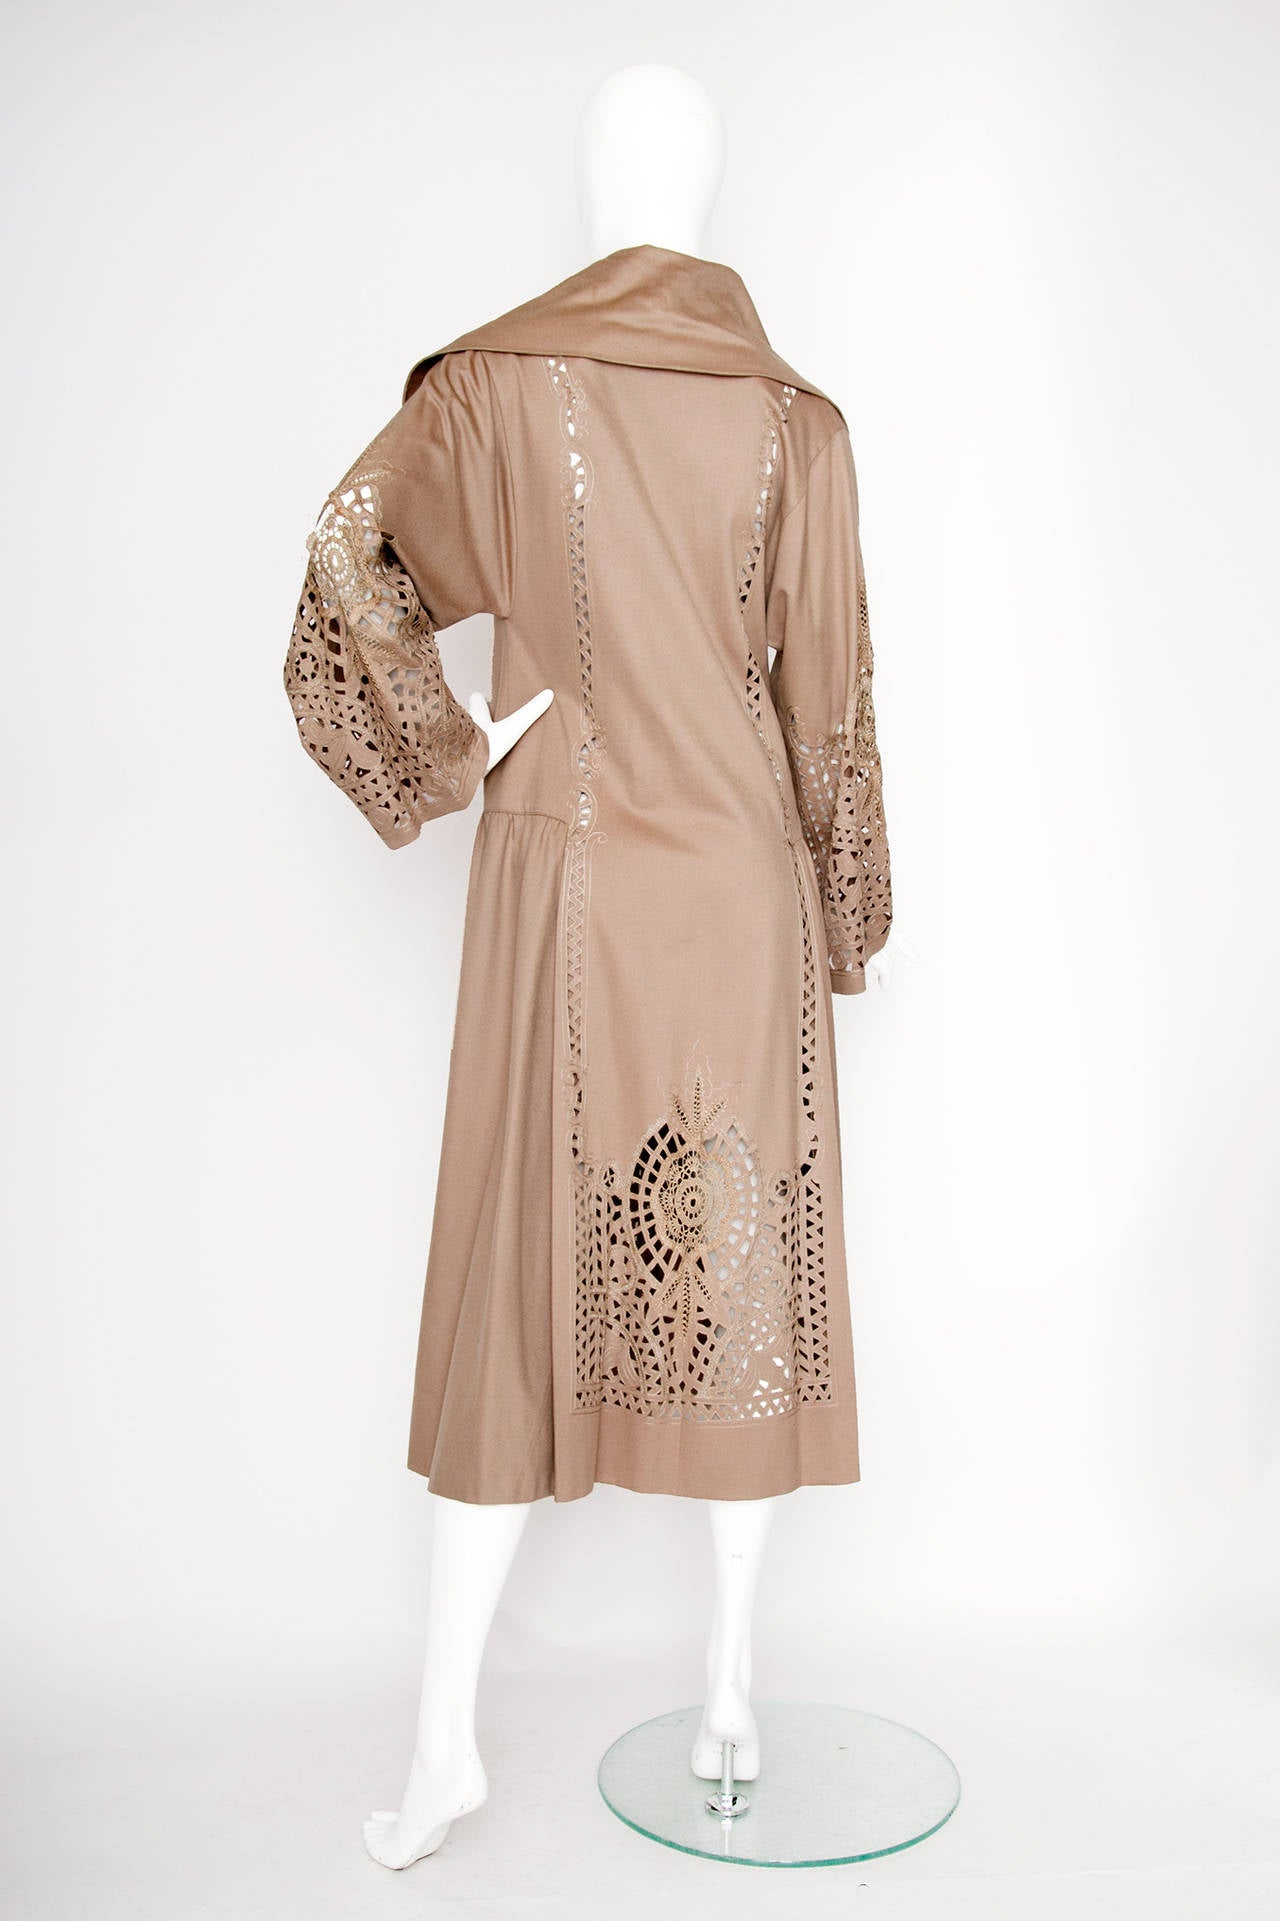 A beautiful 1920s floor length cloak like coat with long sleeves, a wide broad collar, two large centered buttons and an all over detailed stitching and cut work pattern on the sleeves and down the front and back.